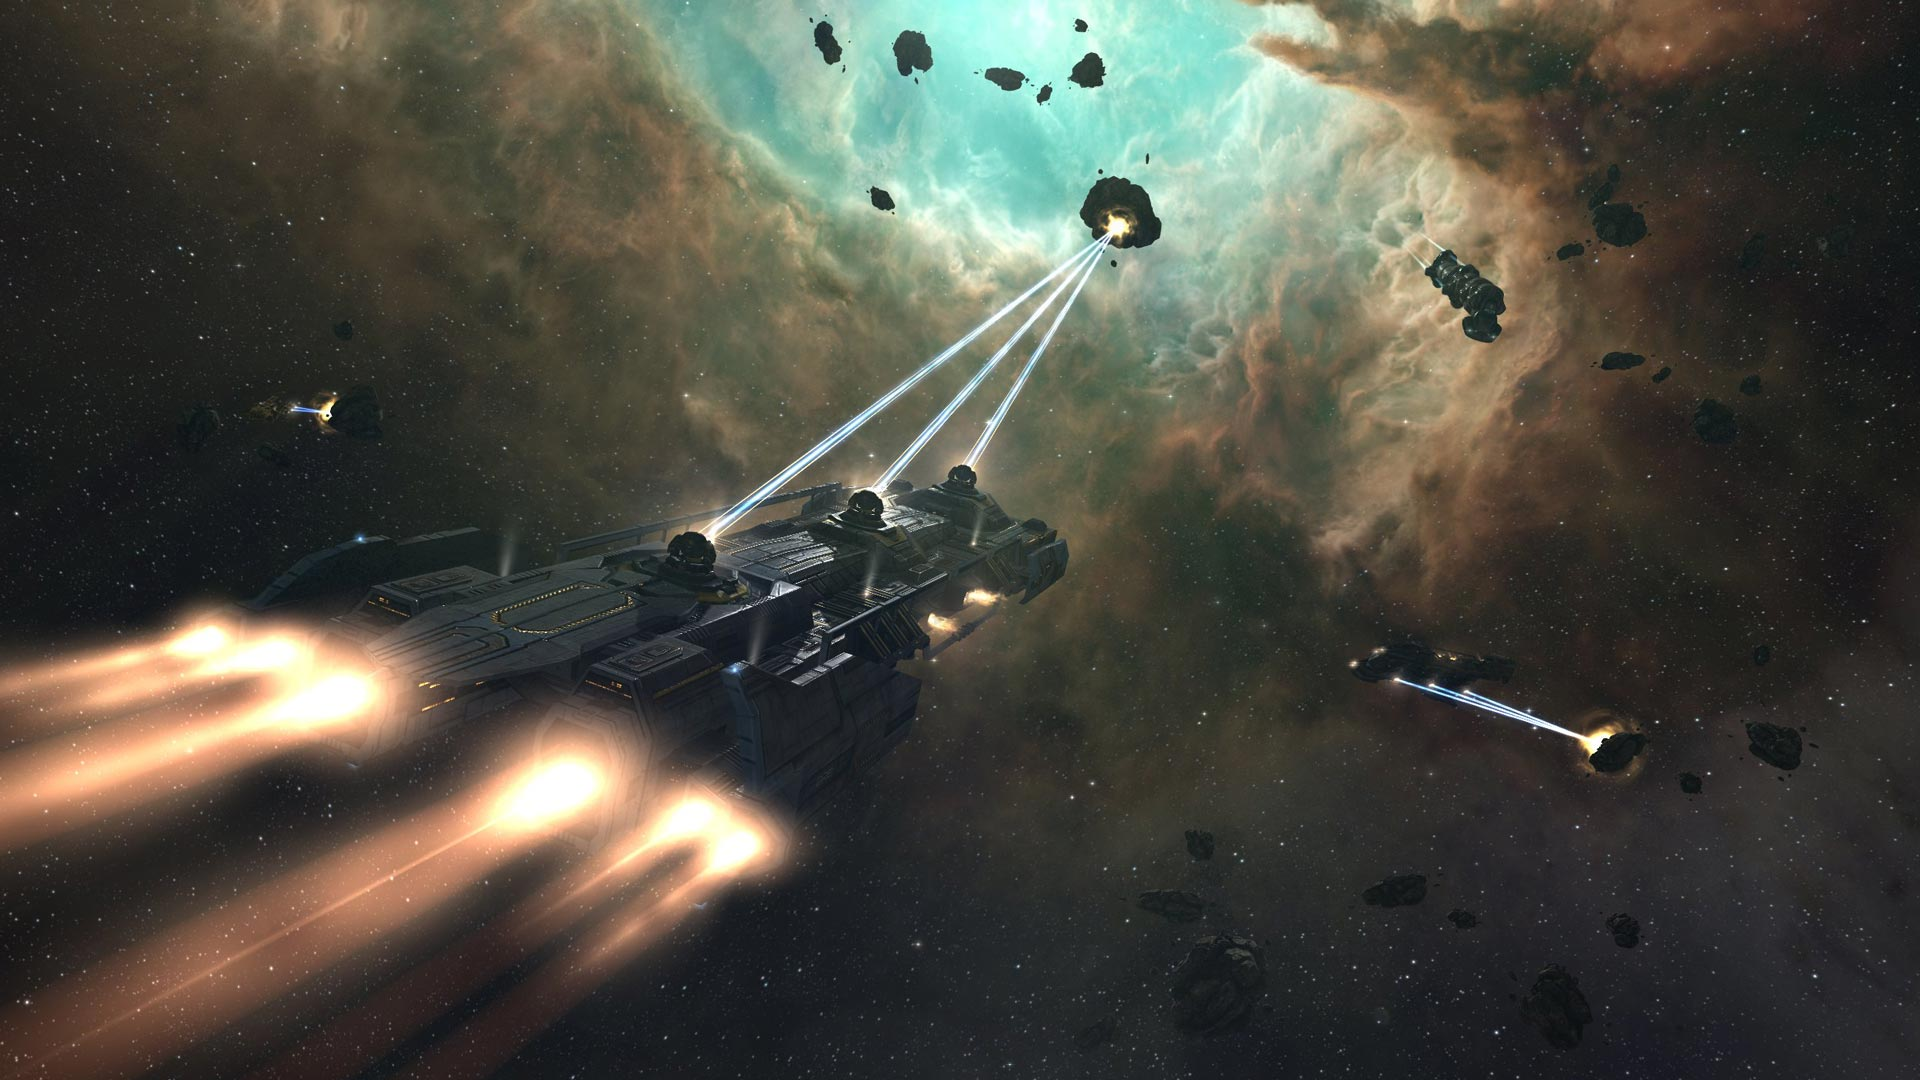 A ship mining in space from EVE Online